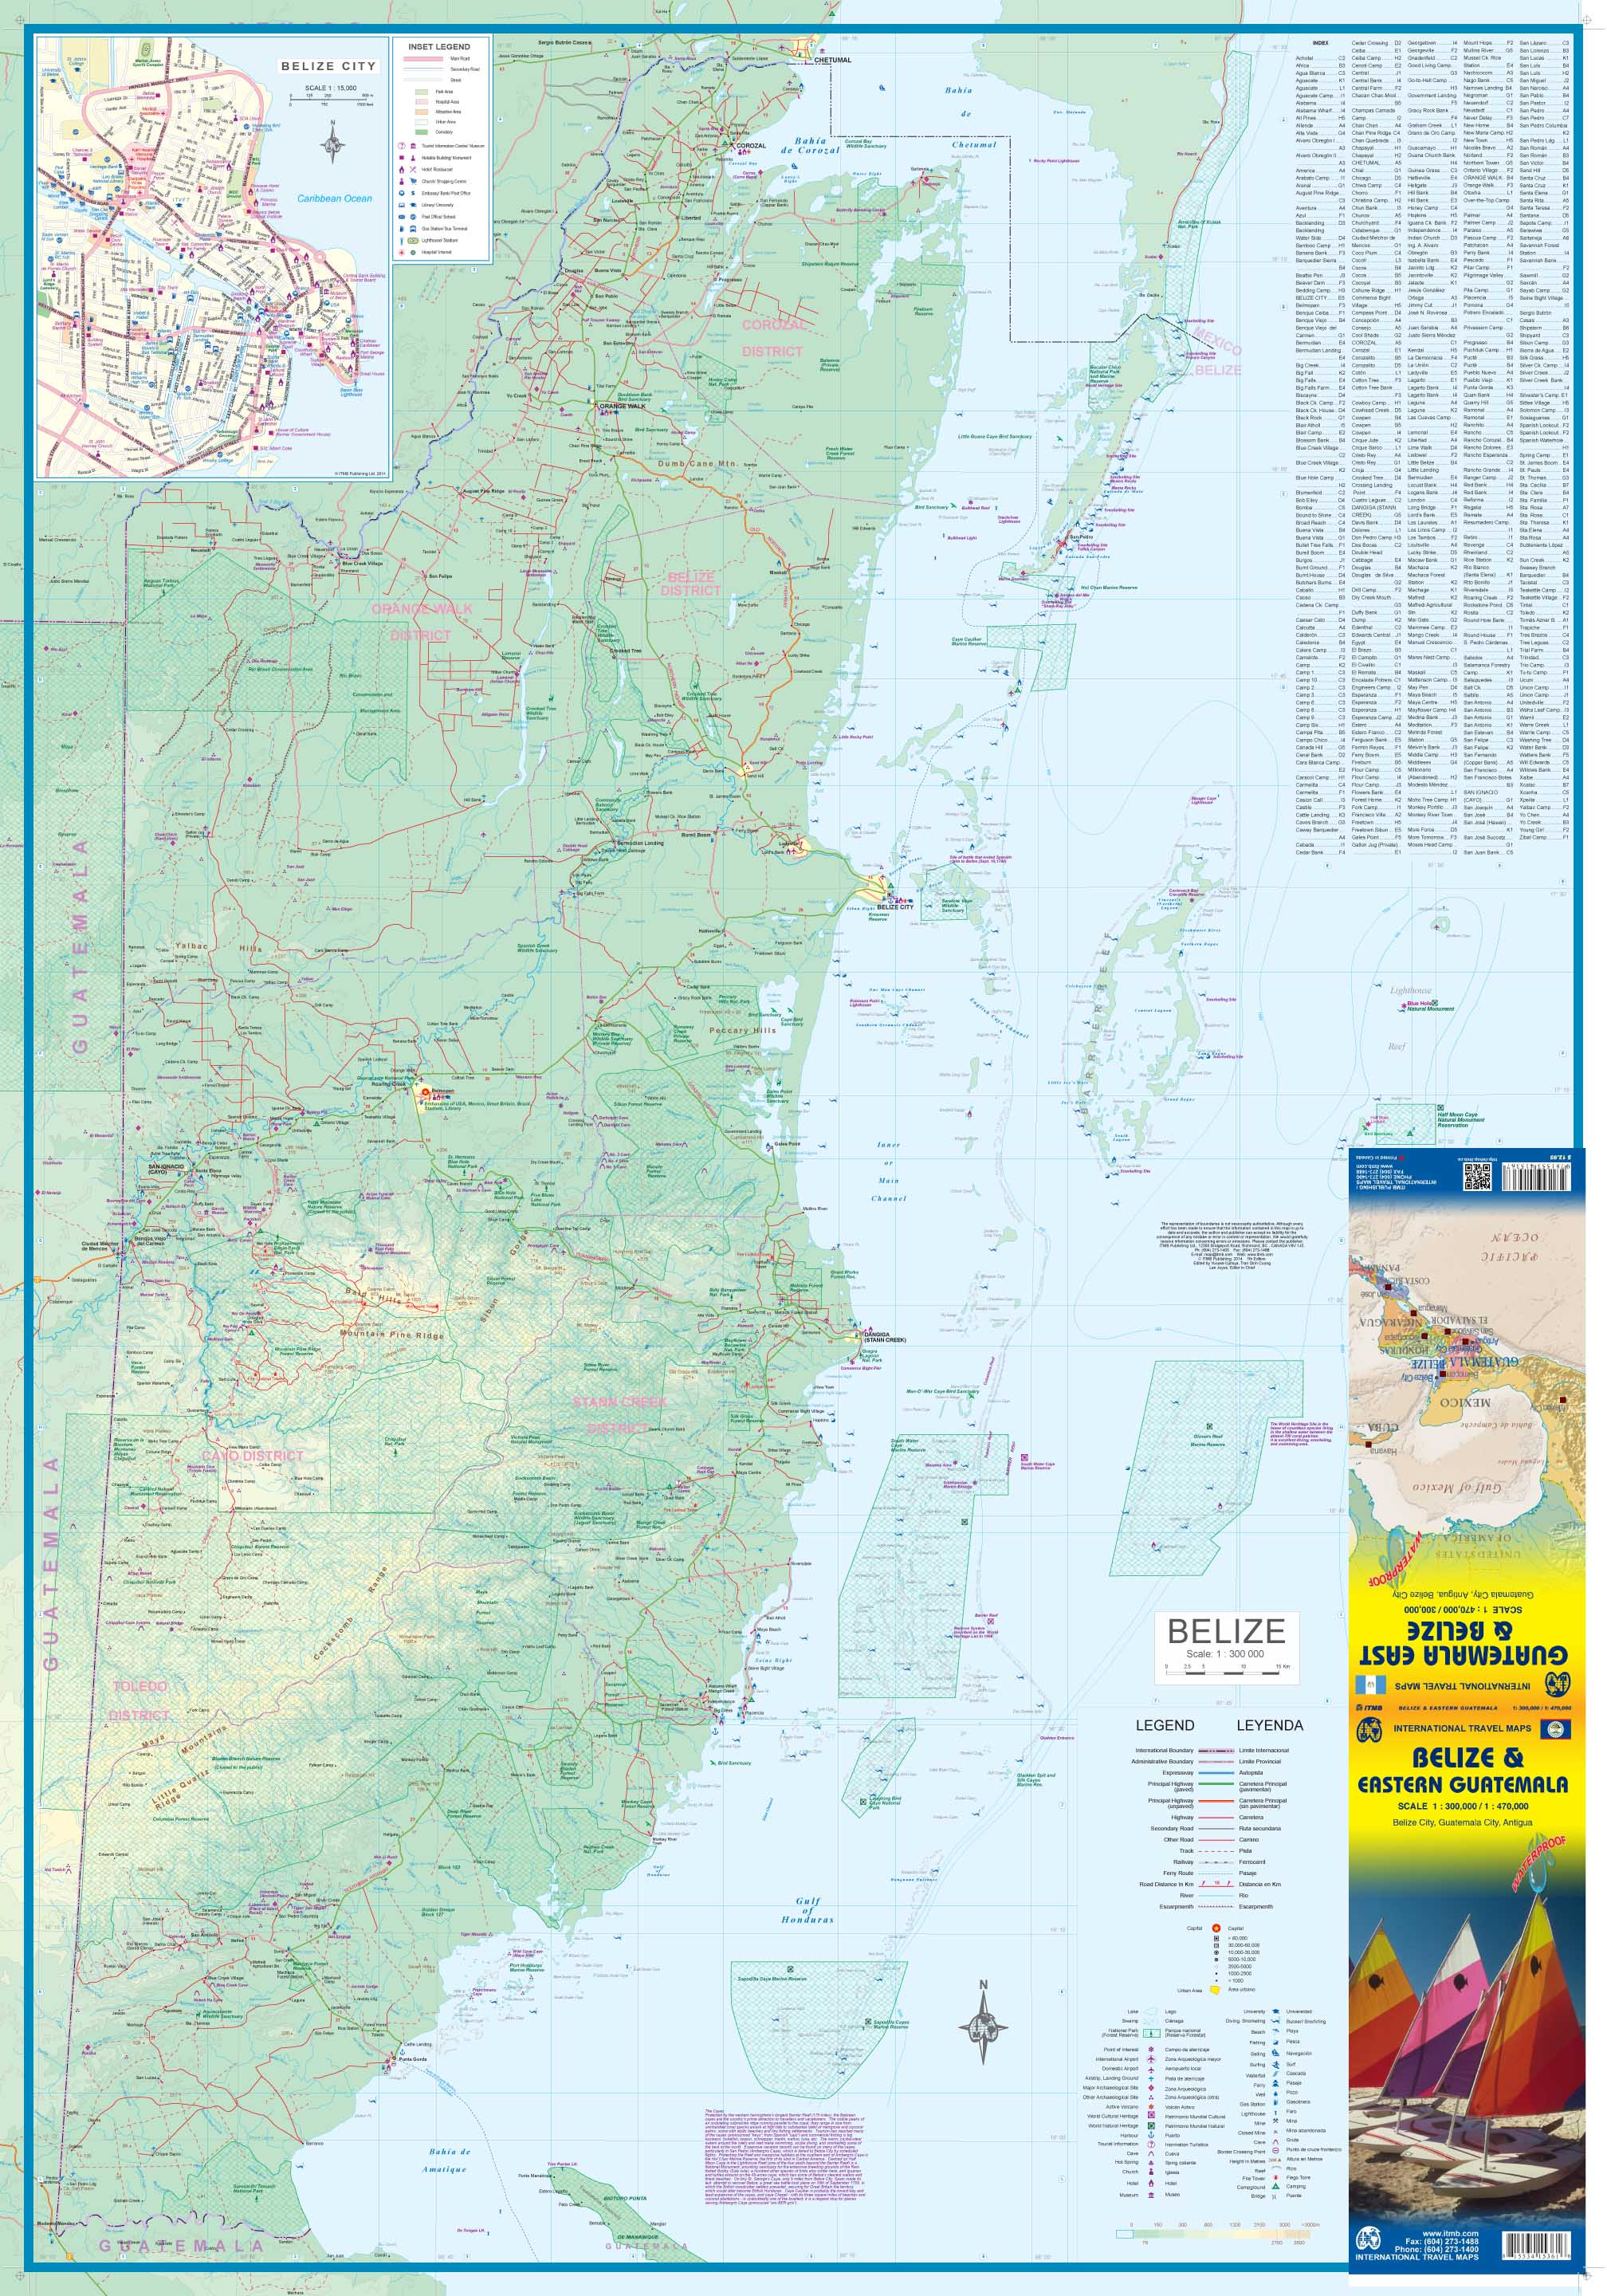 Maps for travel, City Maps, Road Maps, Guides, Globes, Topographic Quebec Topographic Maps on